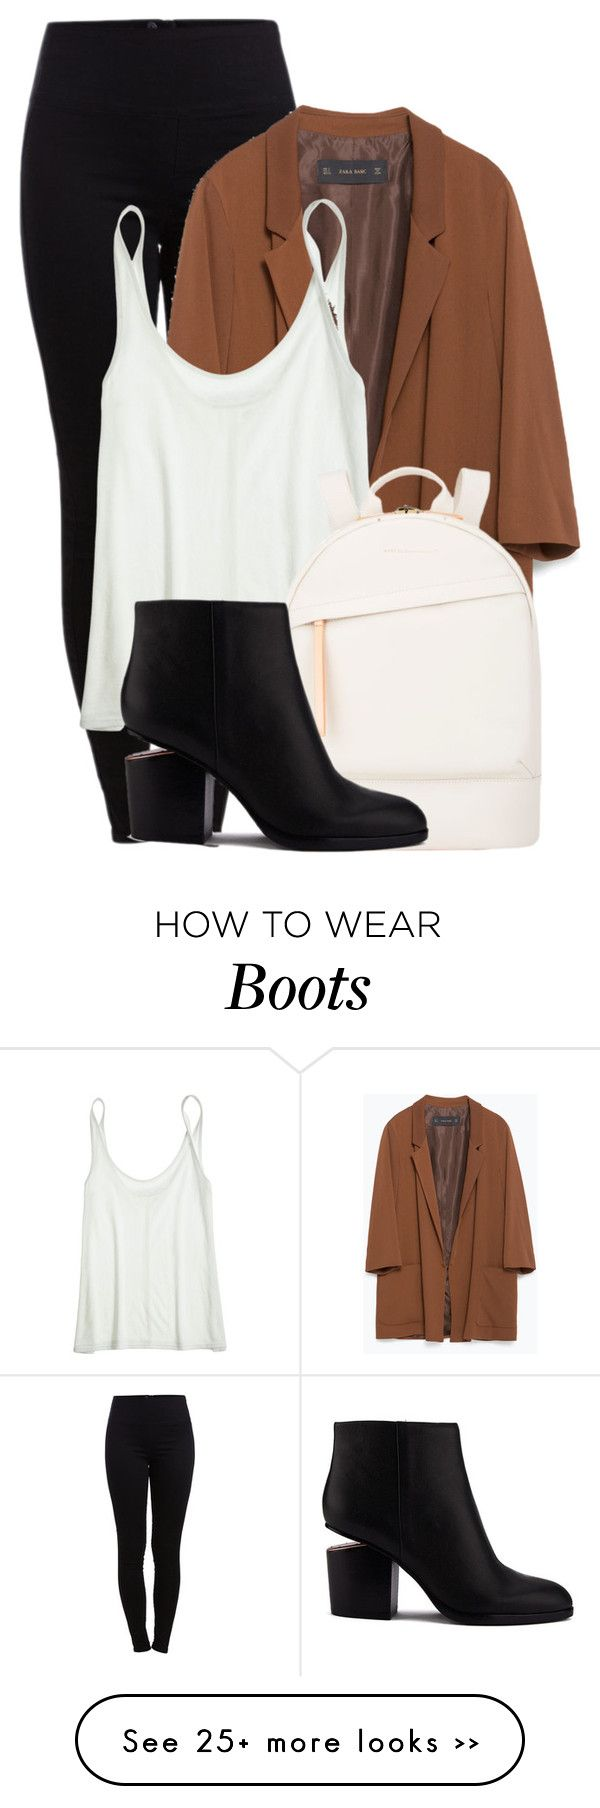 """""""Untitled #1228"""" by andreastoessel on Polyvore featuring Pieces, Zara, Calypso St. Barth, Want Les Essentiels de la Vie and Alexander Wang"""